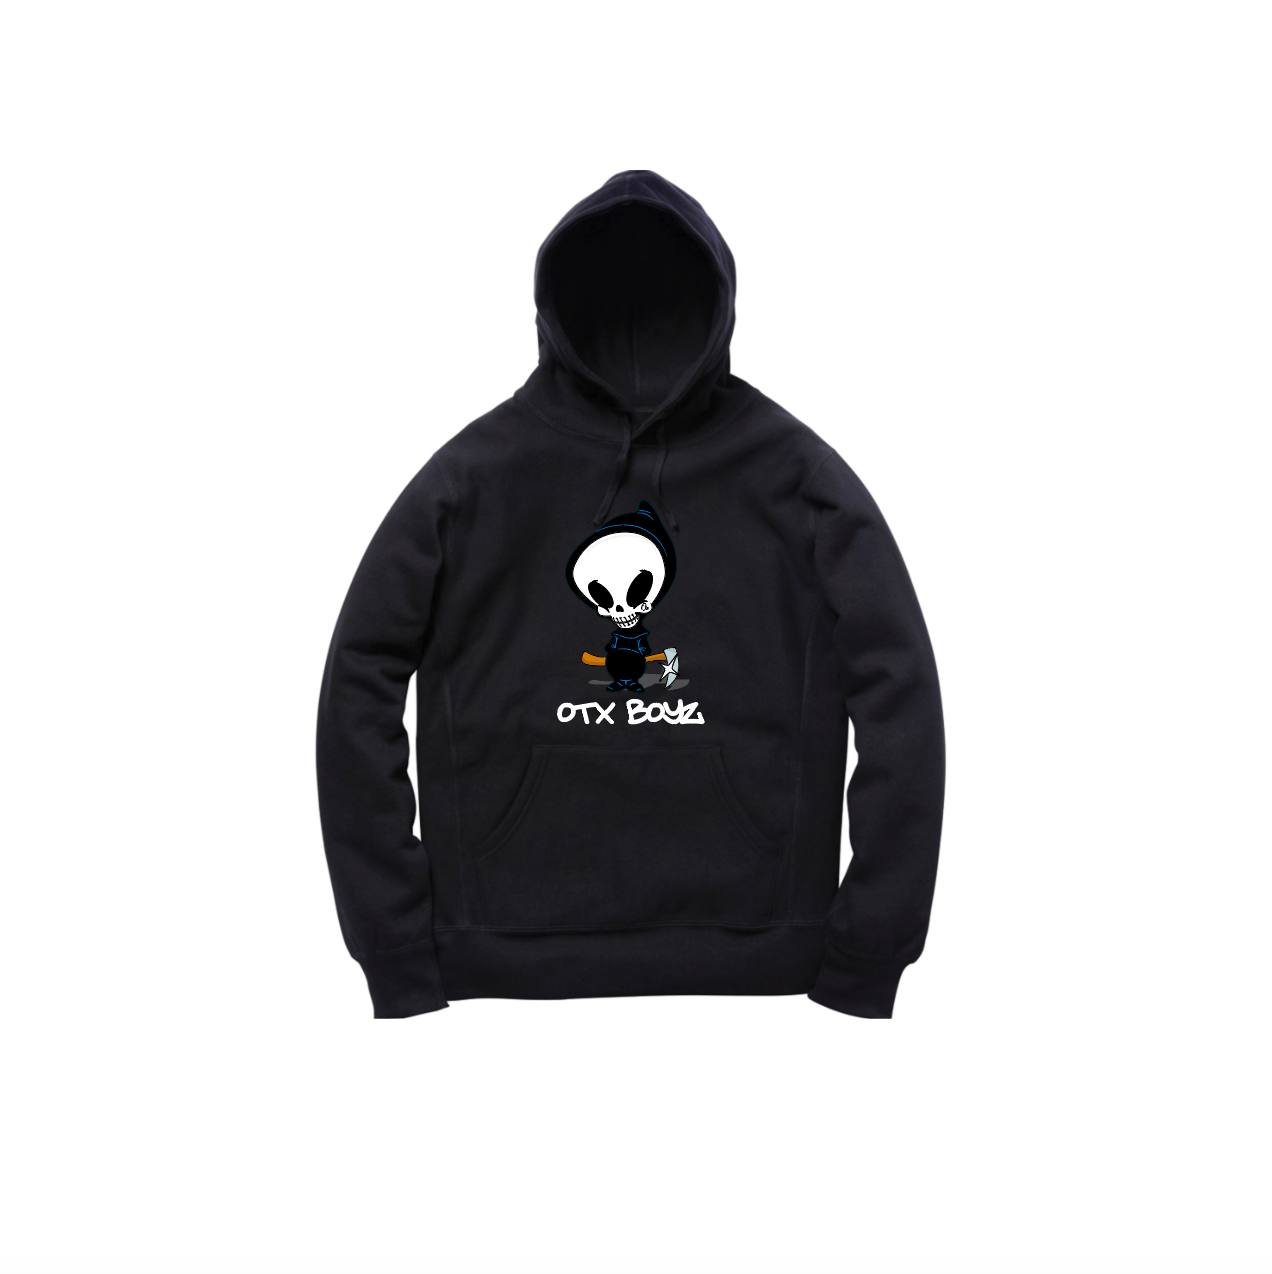 DEATH PULLOVER HOODY: BLACK